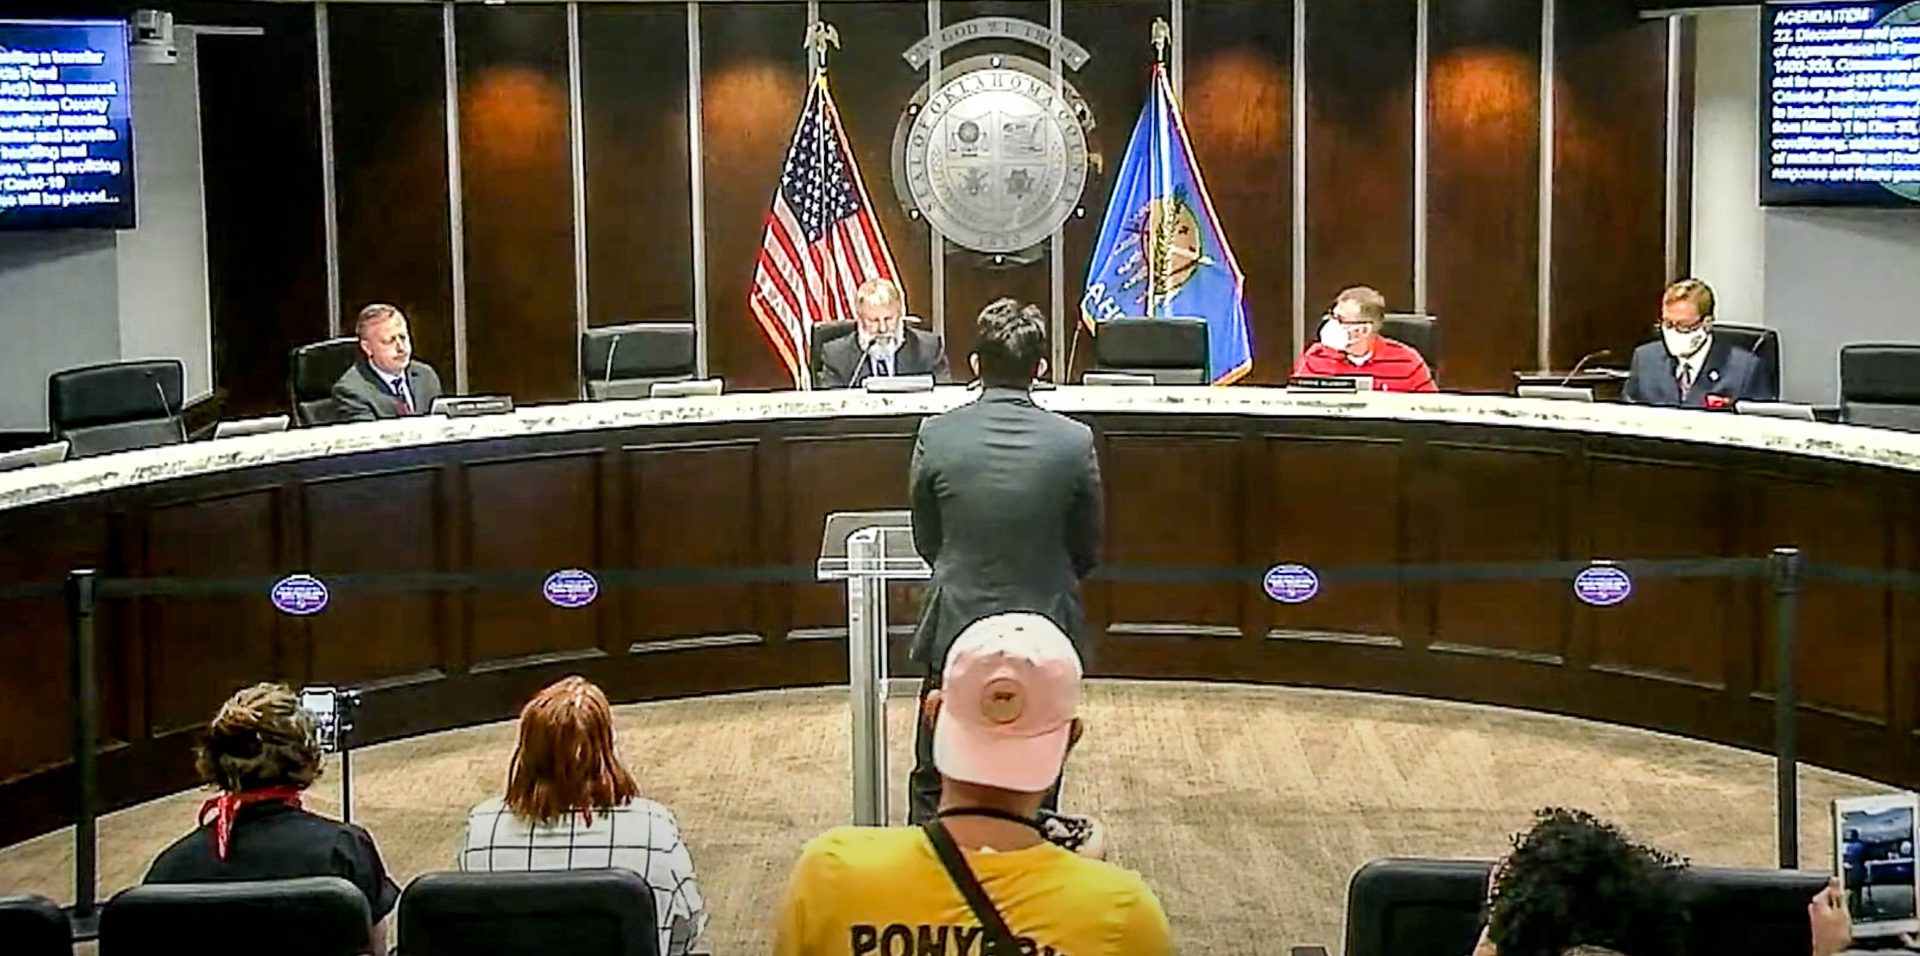 Oklahoma County commissioners conduct their August 19 meeting inside their board room.